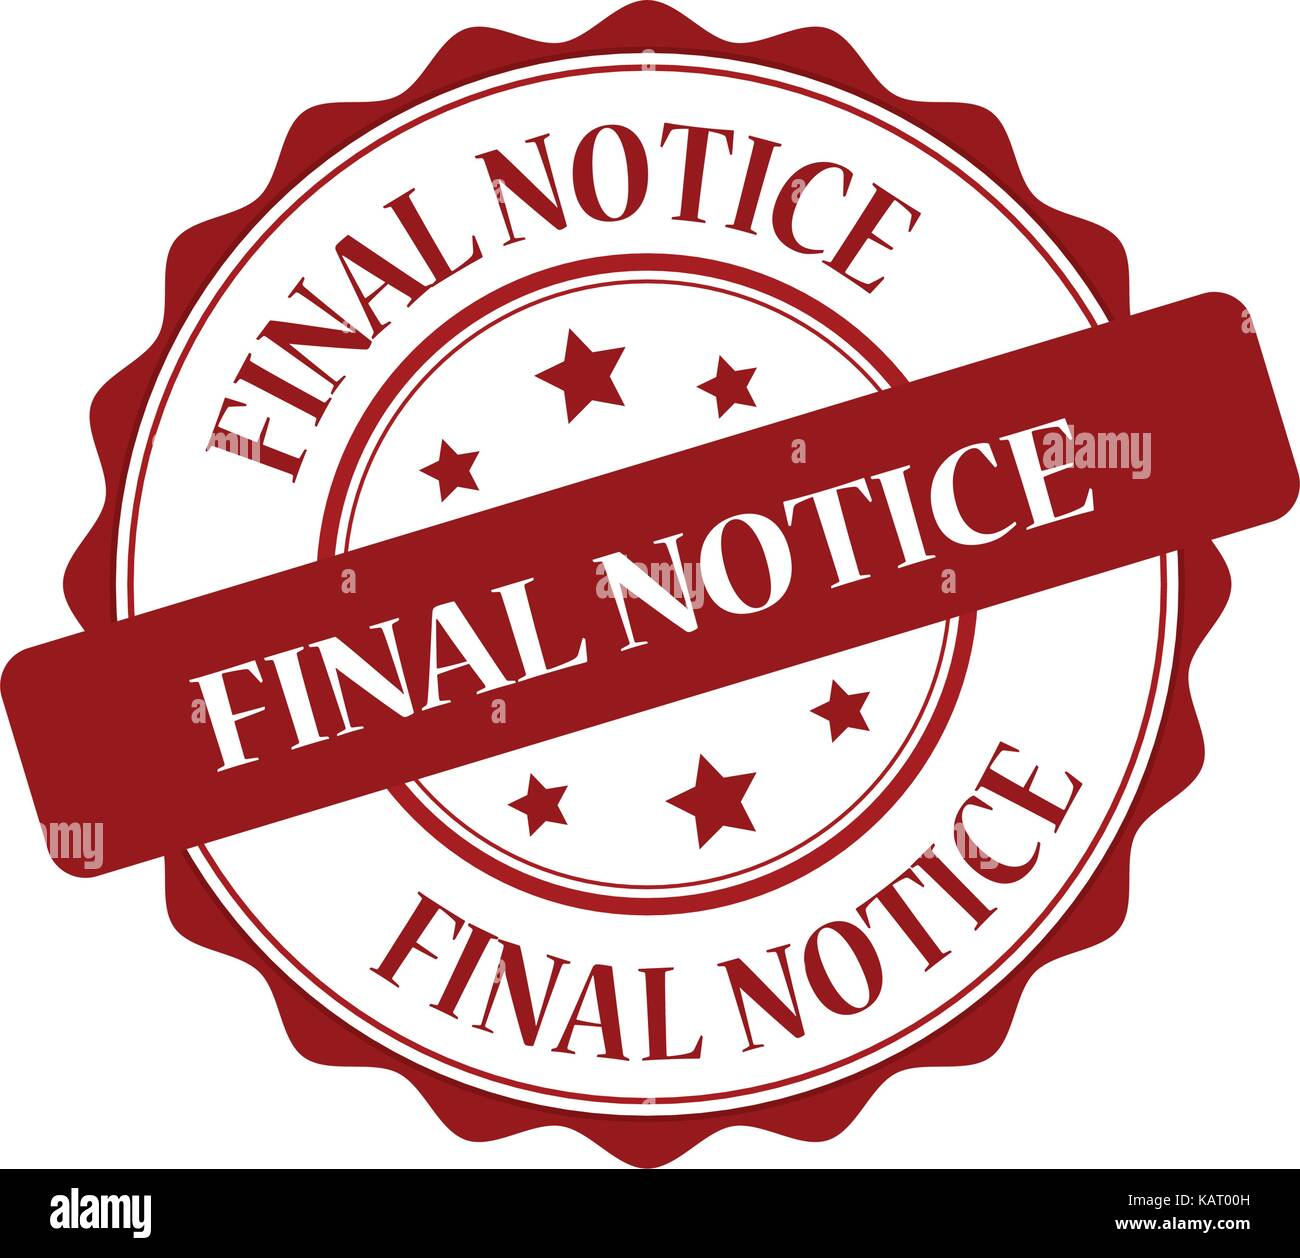 Final notice red stamp illustration - Stock Vector